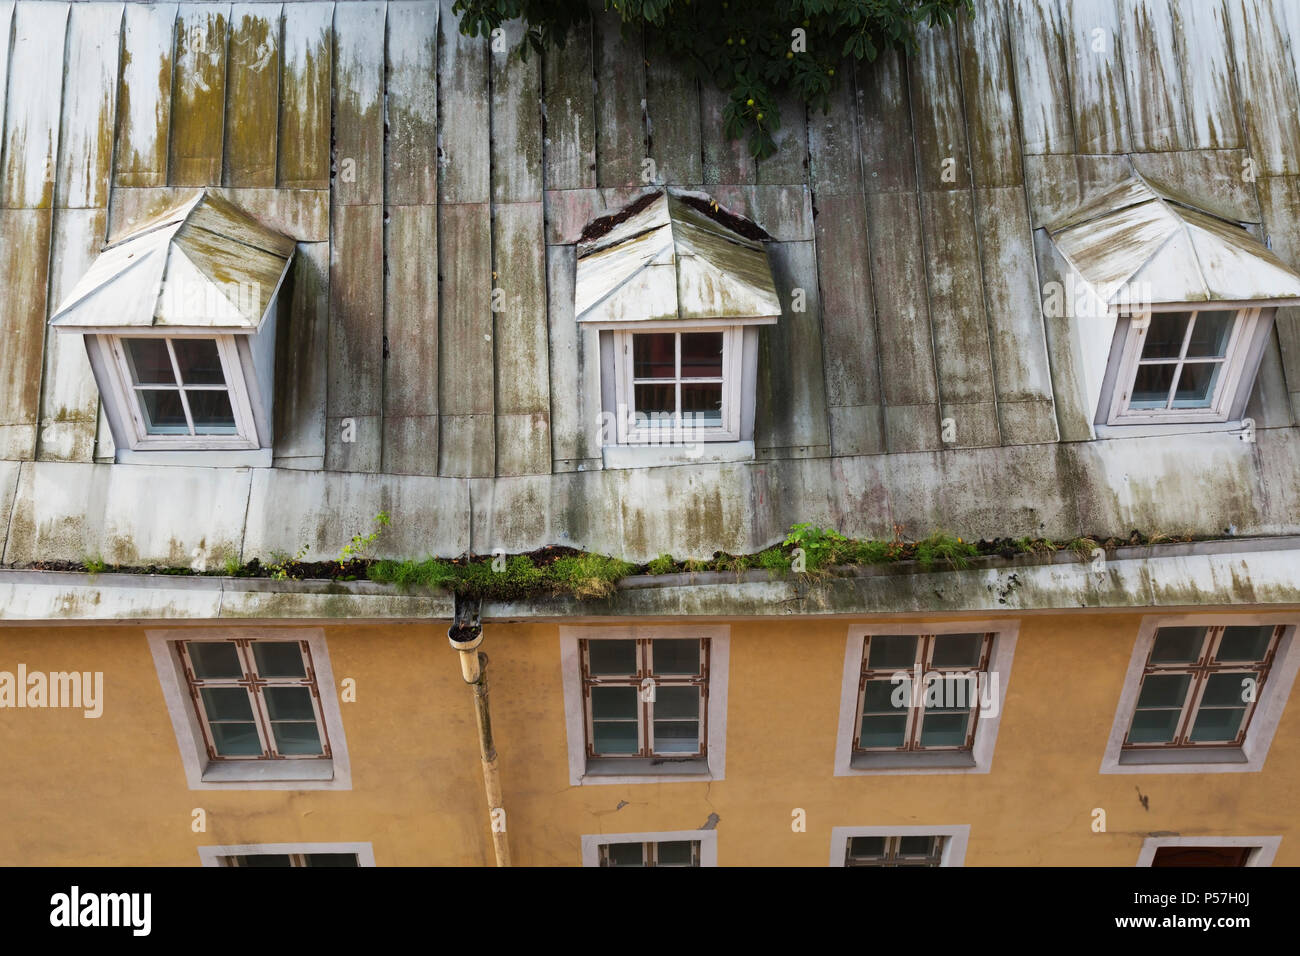 Top View Of Old Architectural Apartment Building With Standing Seam Sheet Metal Roof And Vegetation Growing In The Eavestrough Stock Photo Alamy